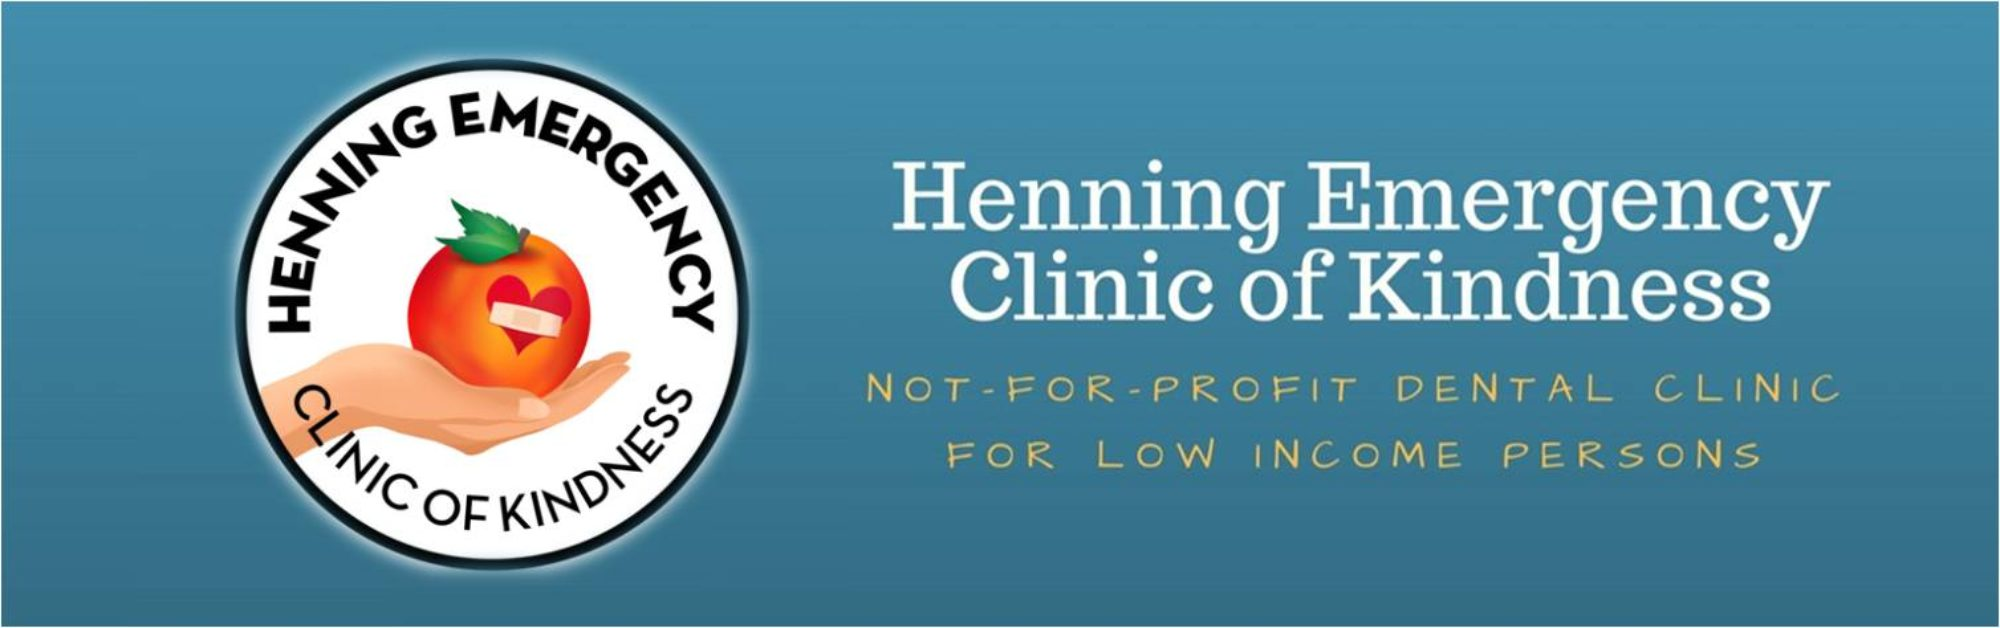 Henning Emergency Clinic of Kindness